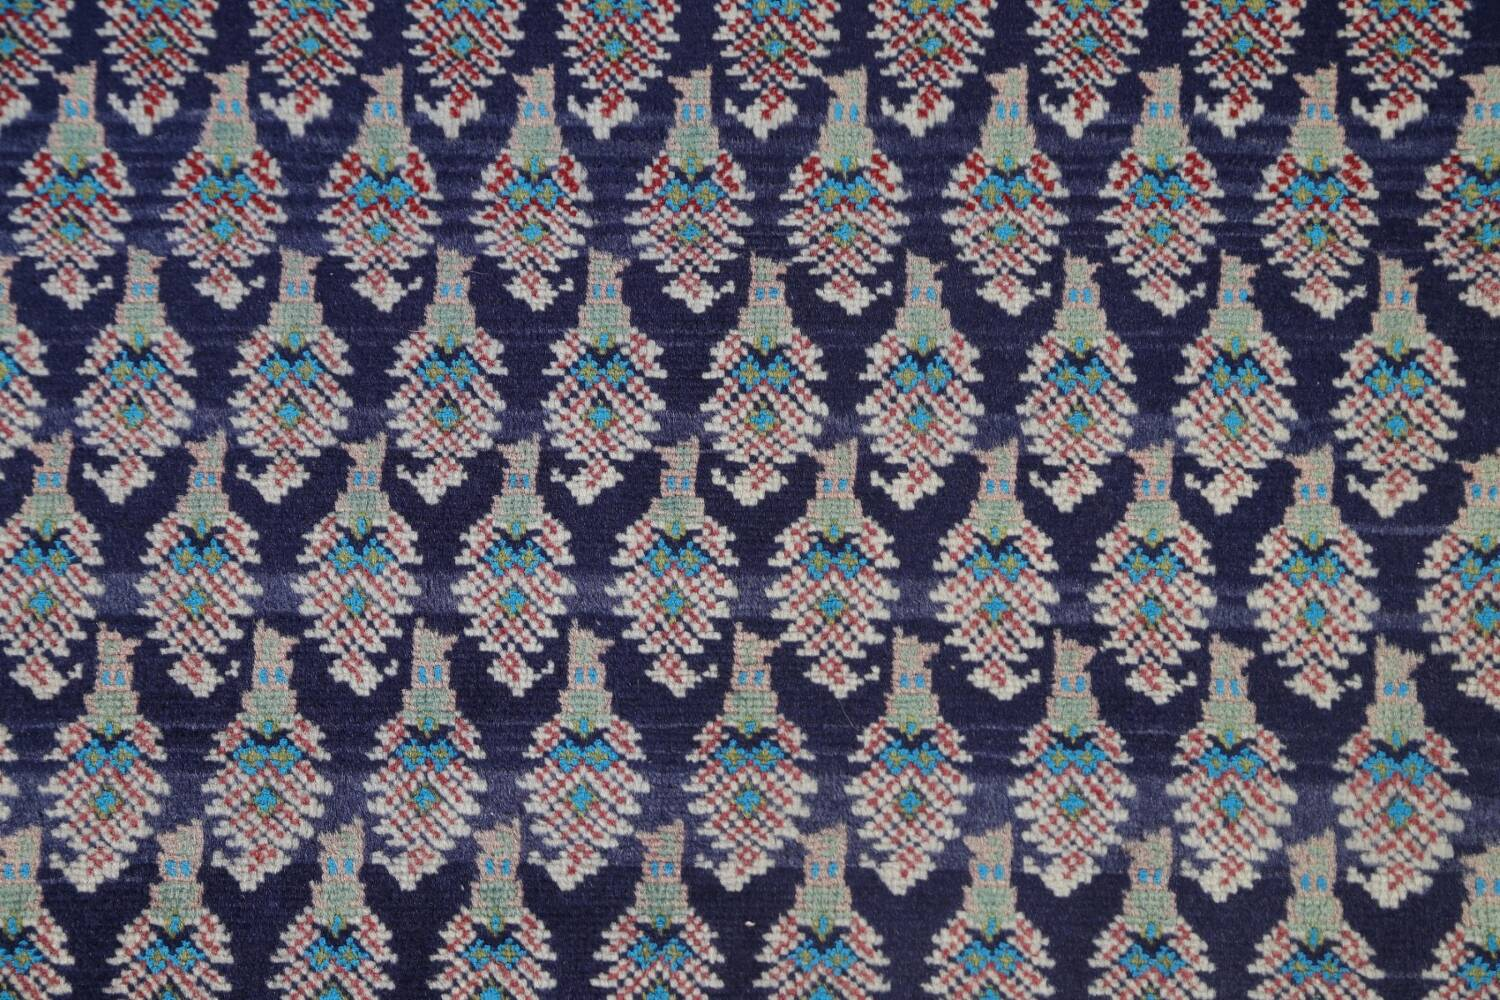 All-Over Navy Blue Tabriz Persian Area Rug 2x3 image 4